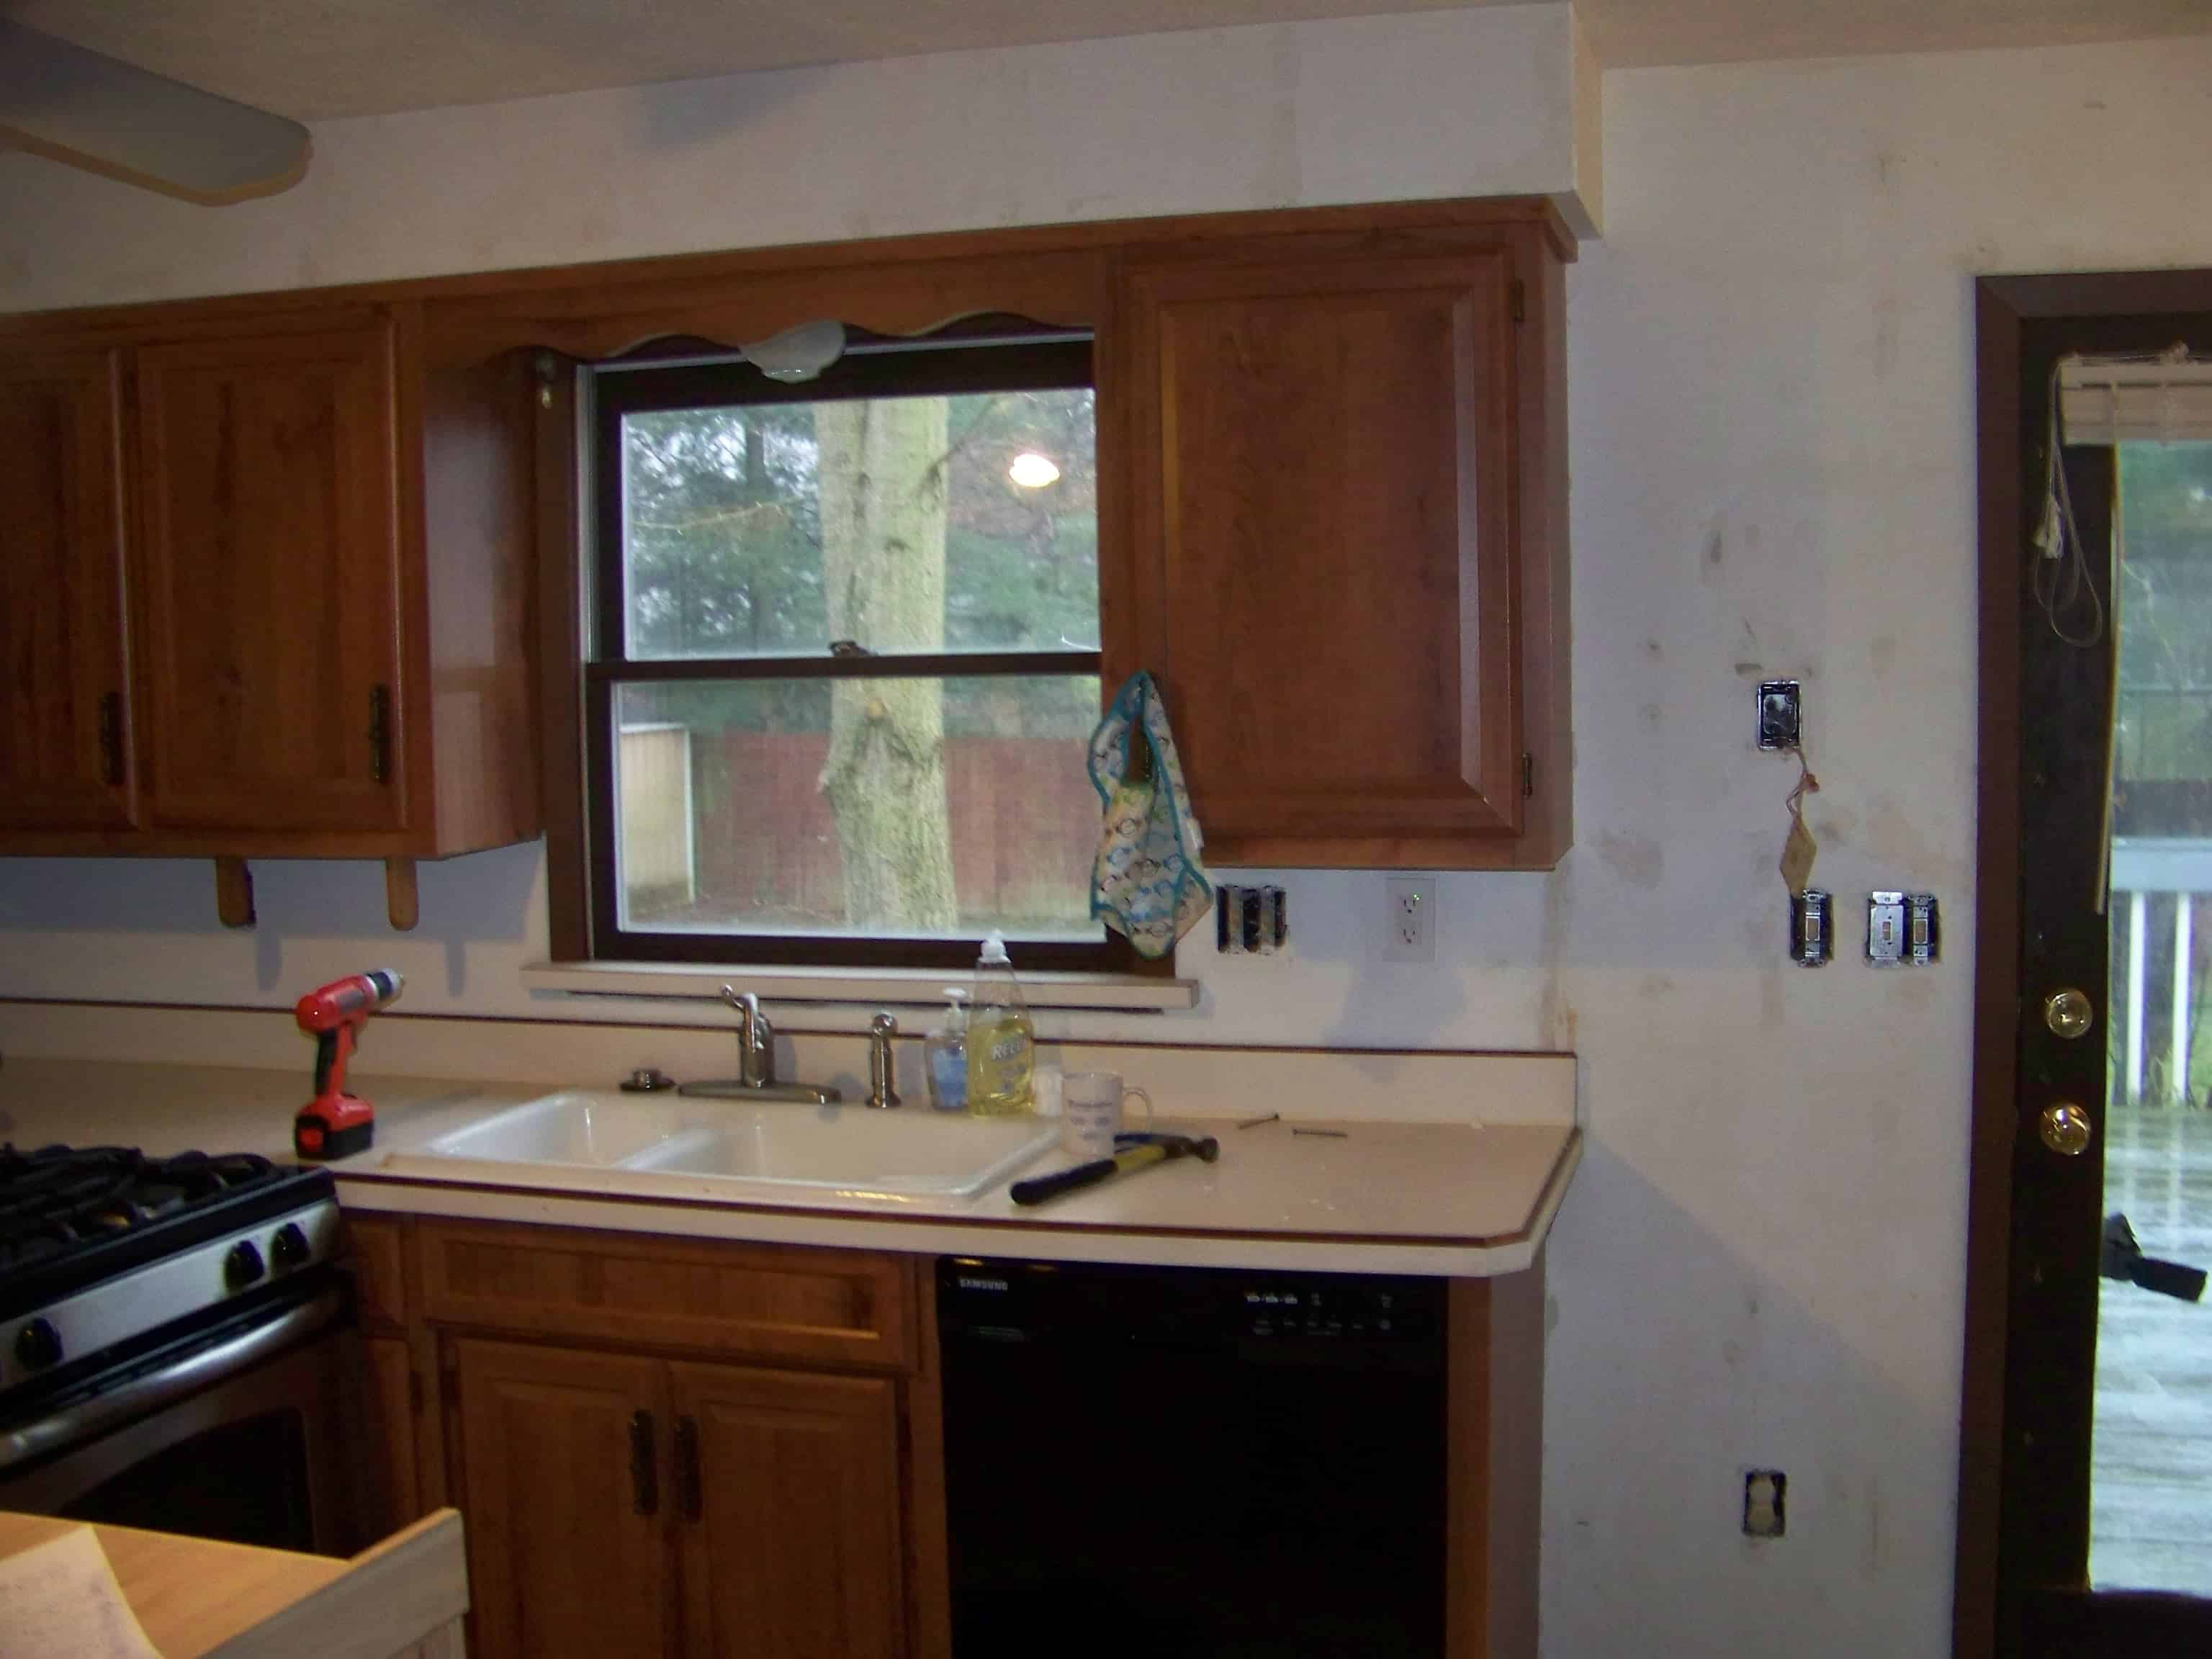 kitchen at the beginning of rennocation with old appliances and brown cabinets